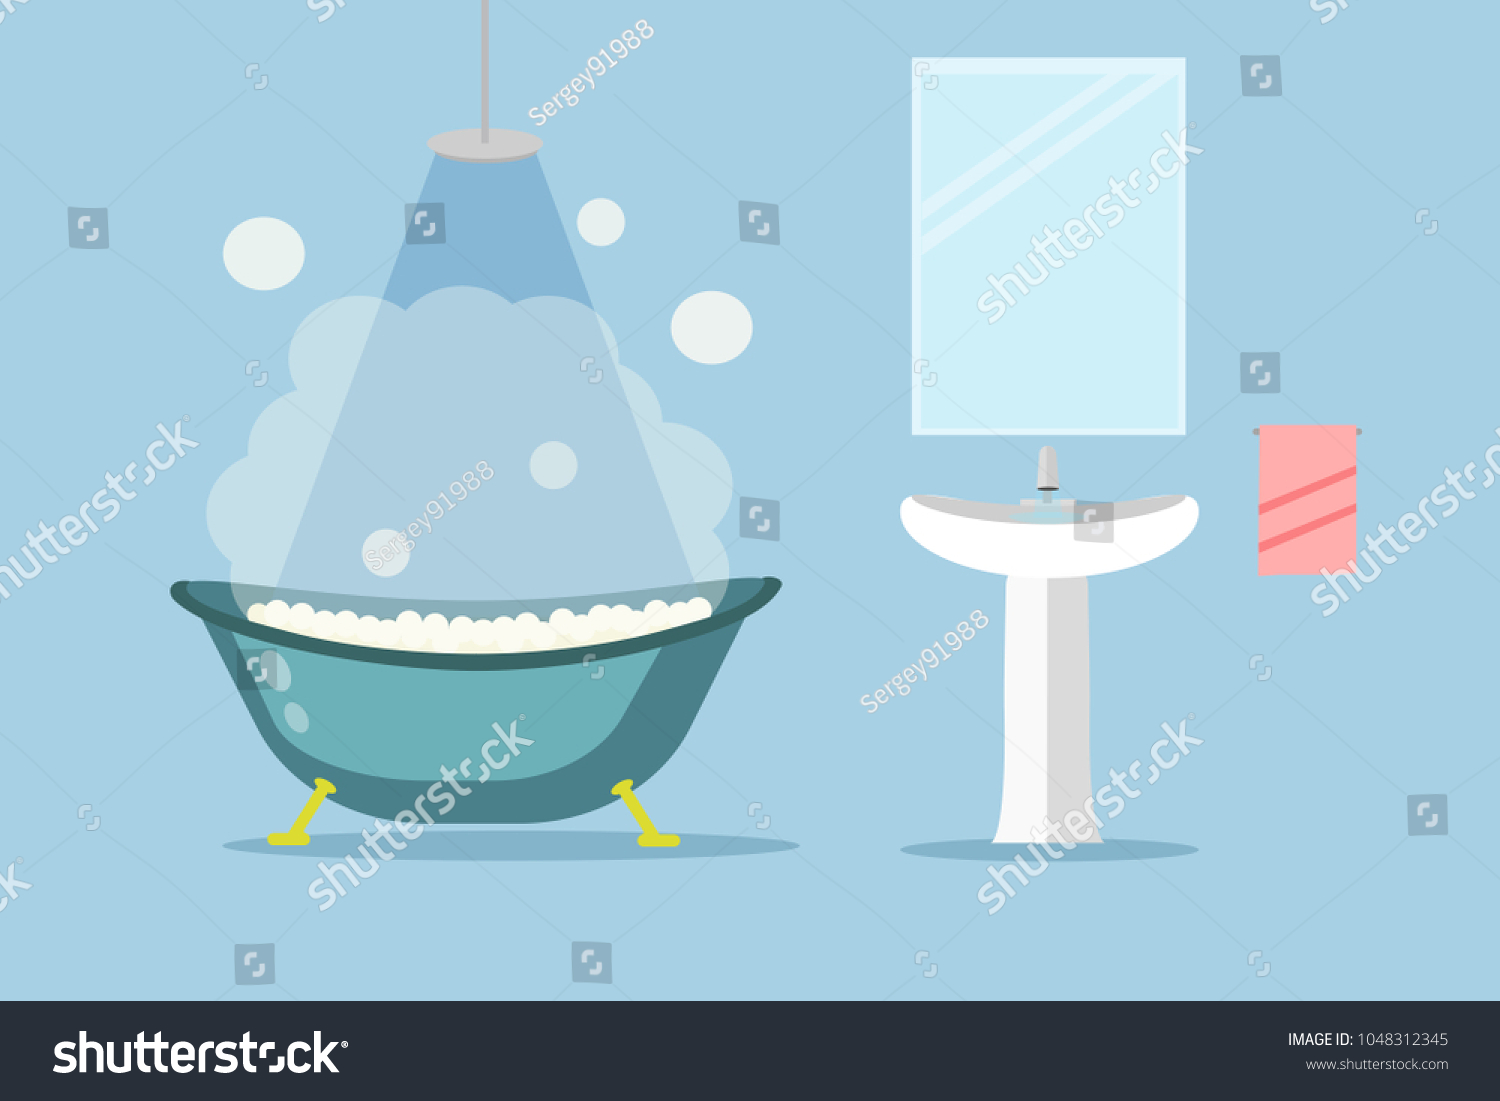 Bathtub Full Foam Bubbles Basin Bathroom Stock Vector 1048312345 ...